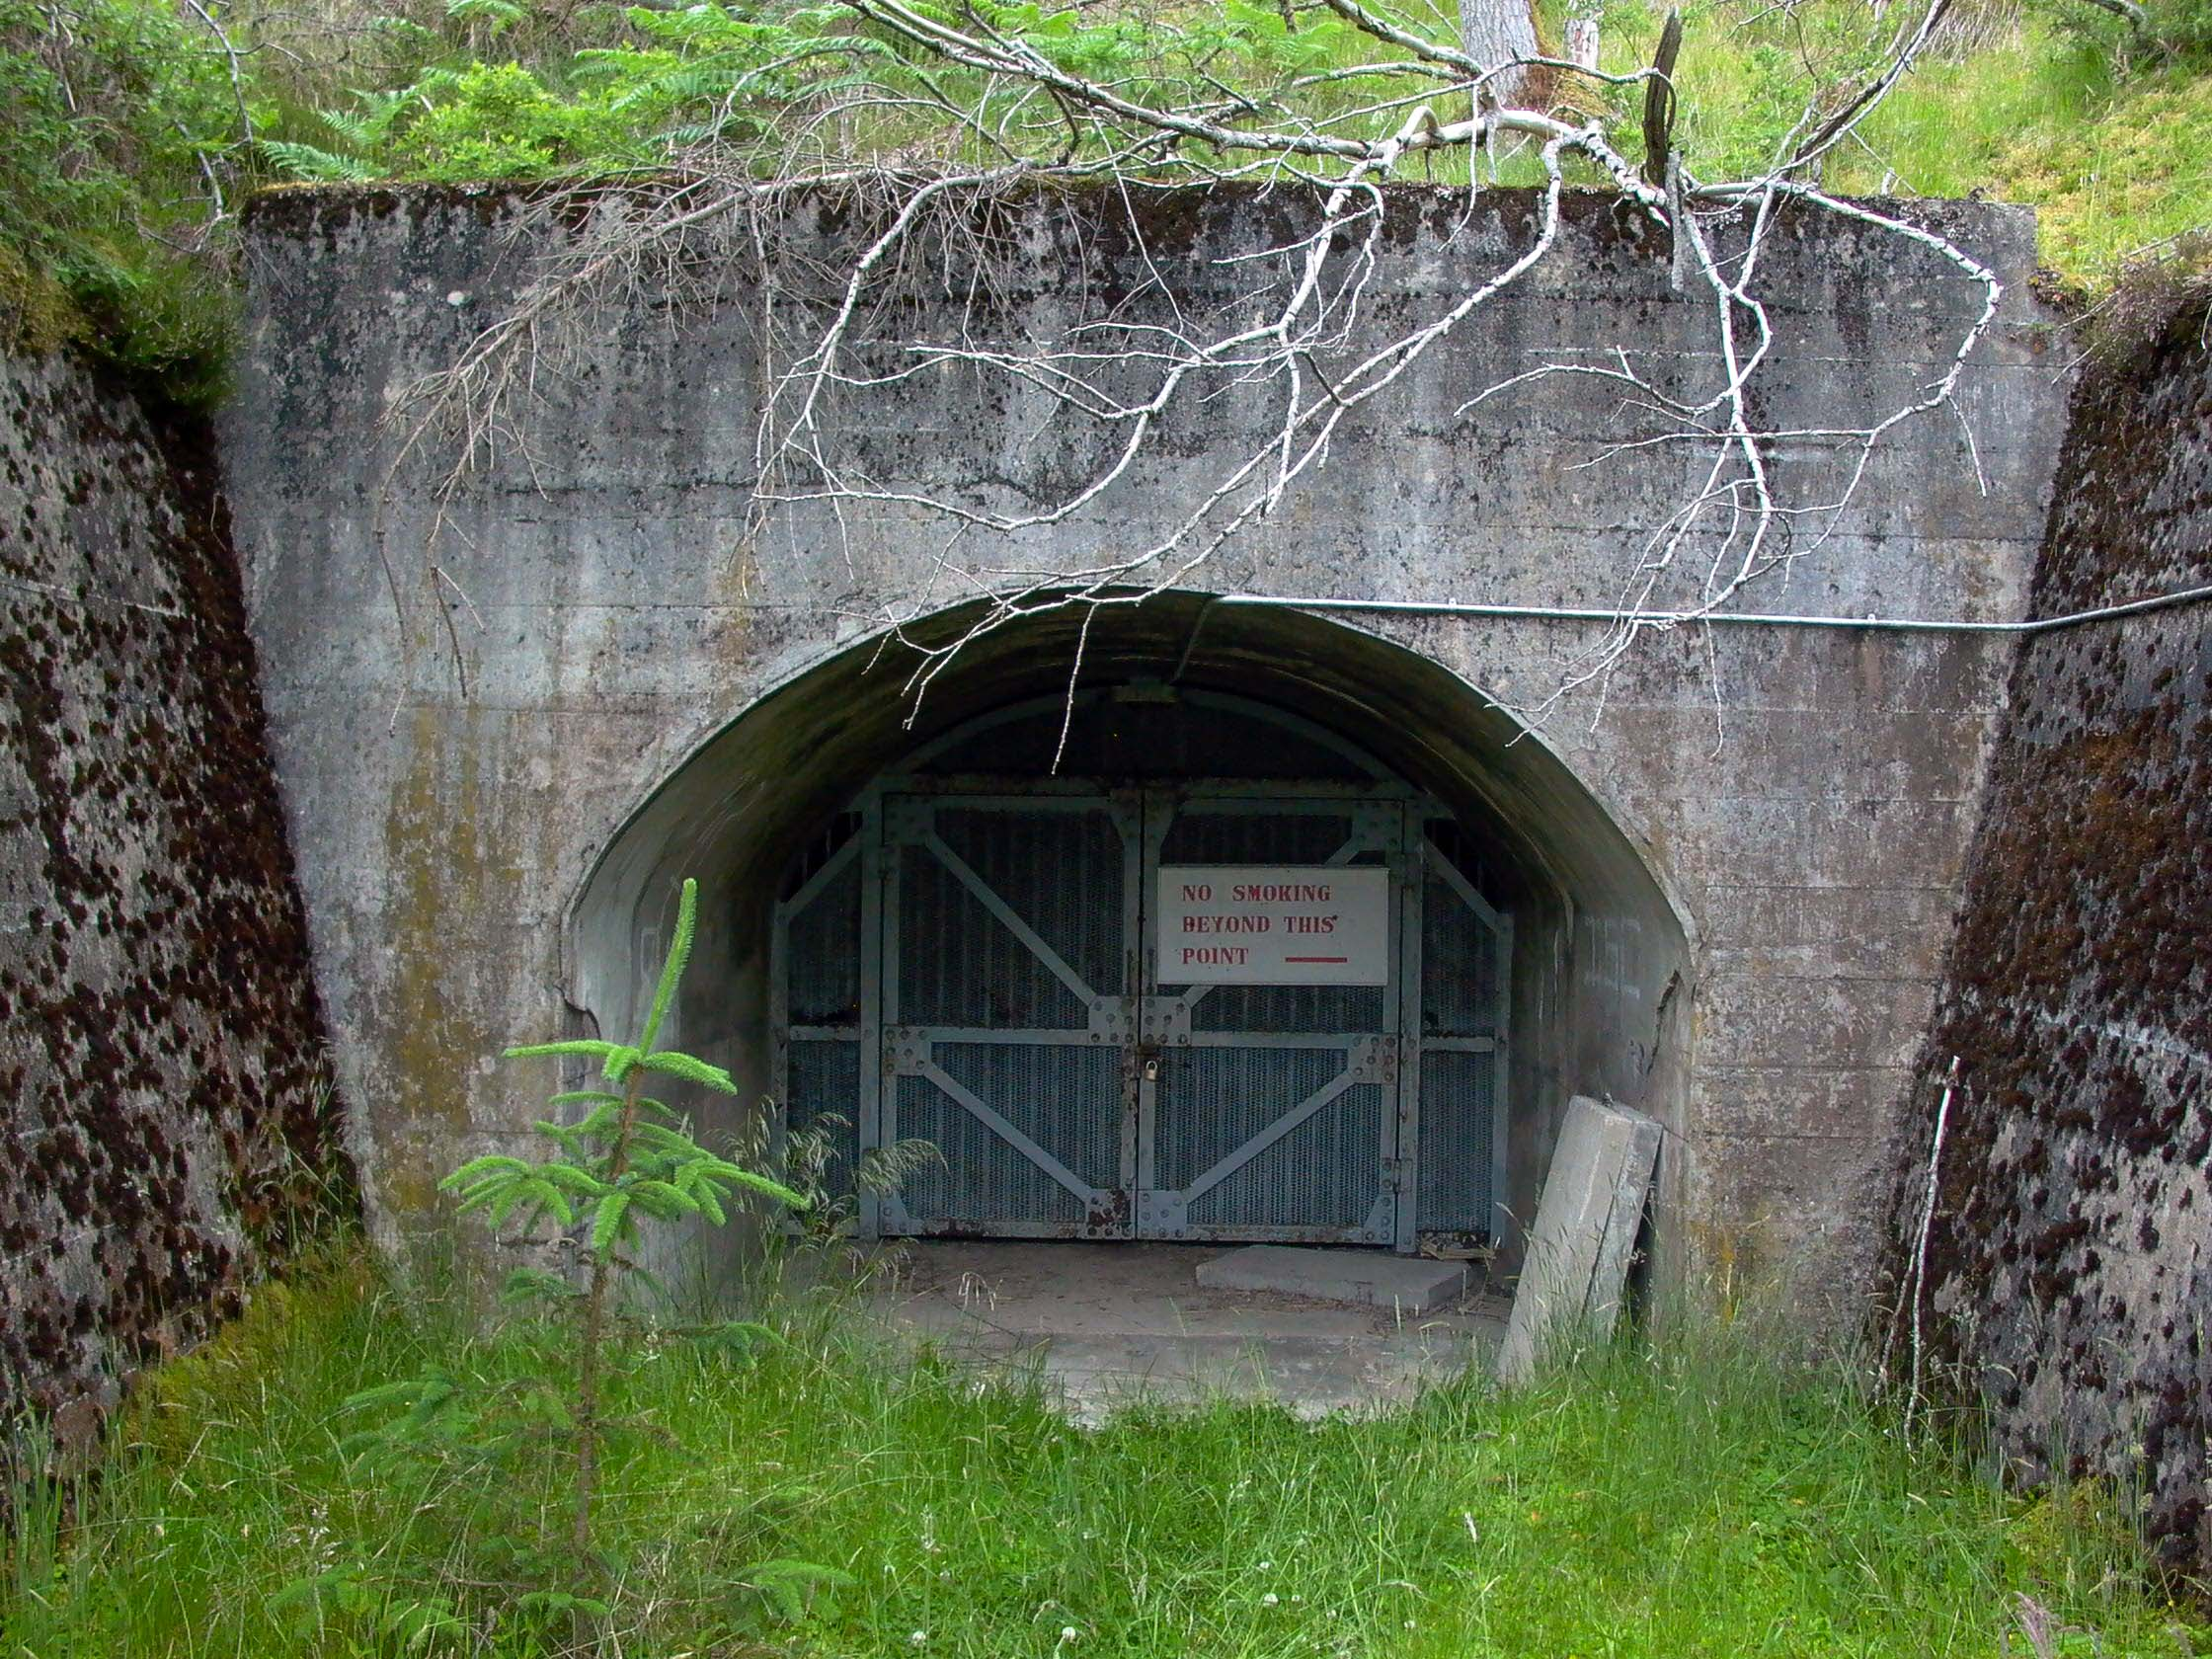 Subterranea Britannica: Sites: Inchindown Fuel Bunker